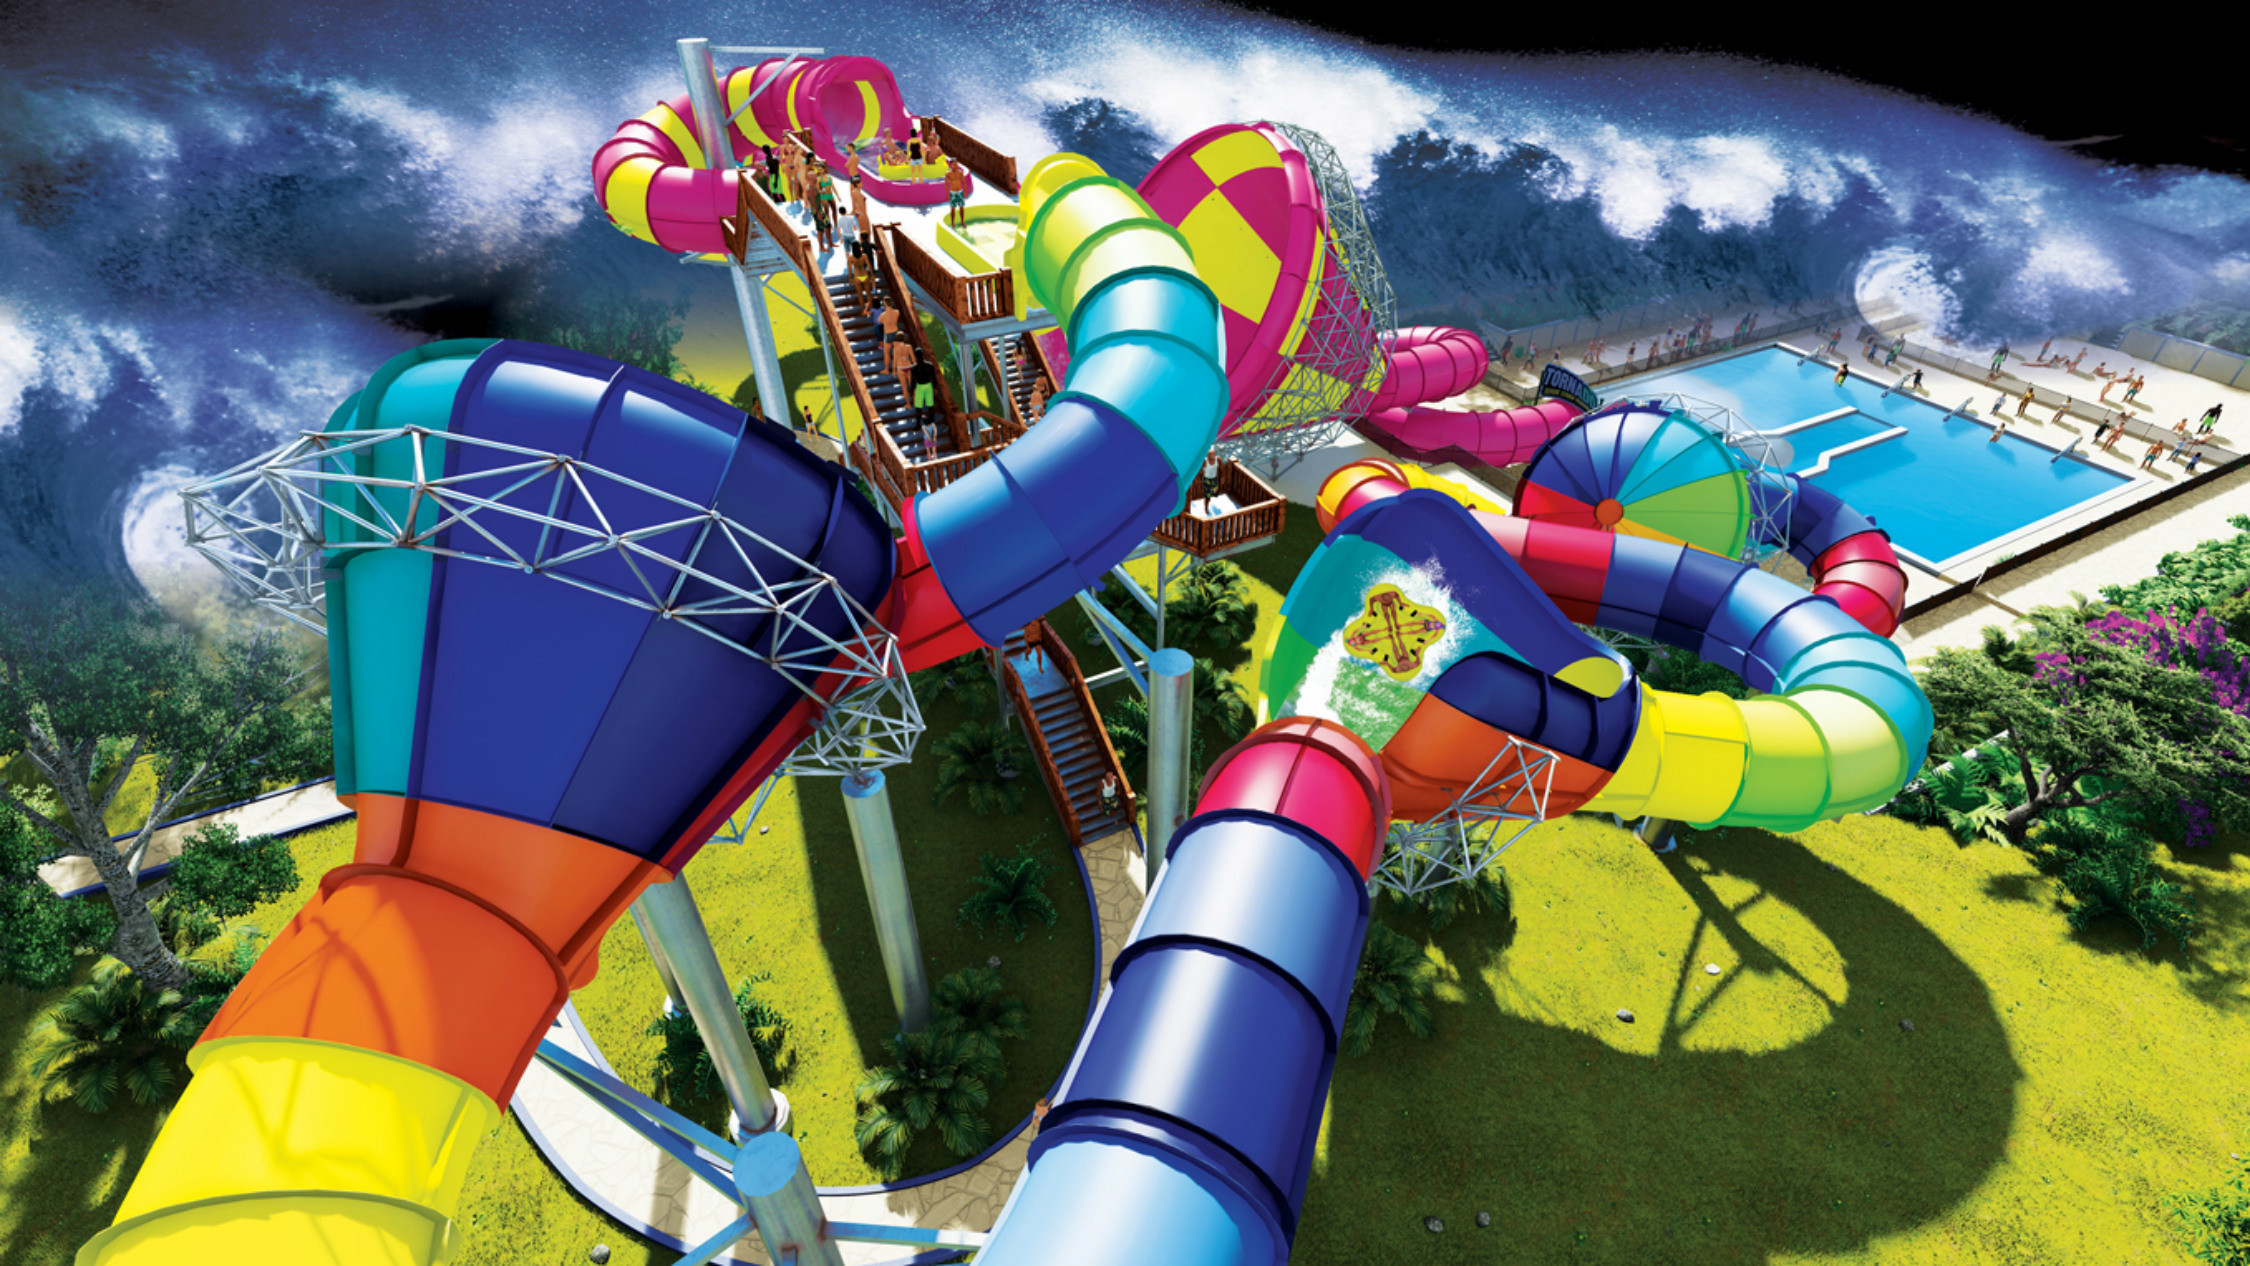 Adventure Park's new $4 million waterslide is only one of two in Australia